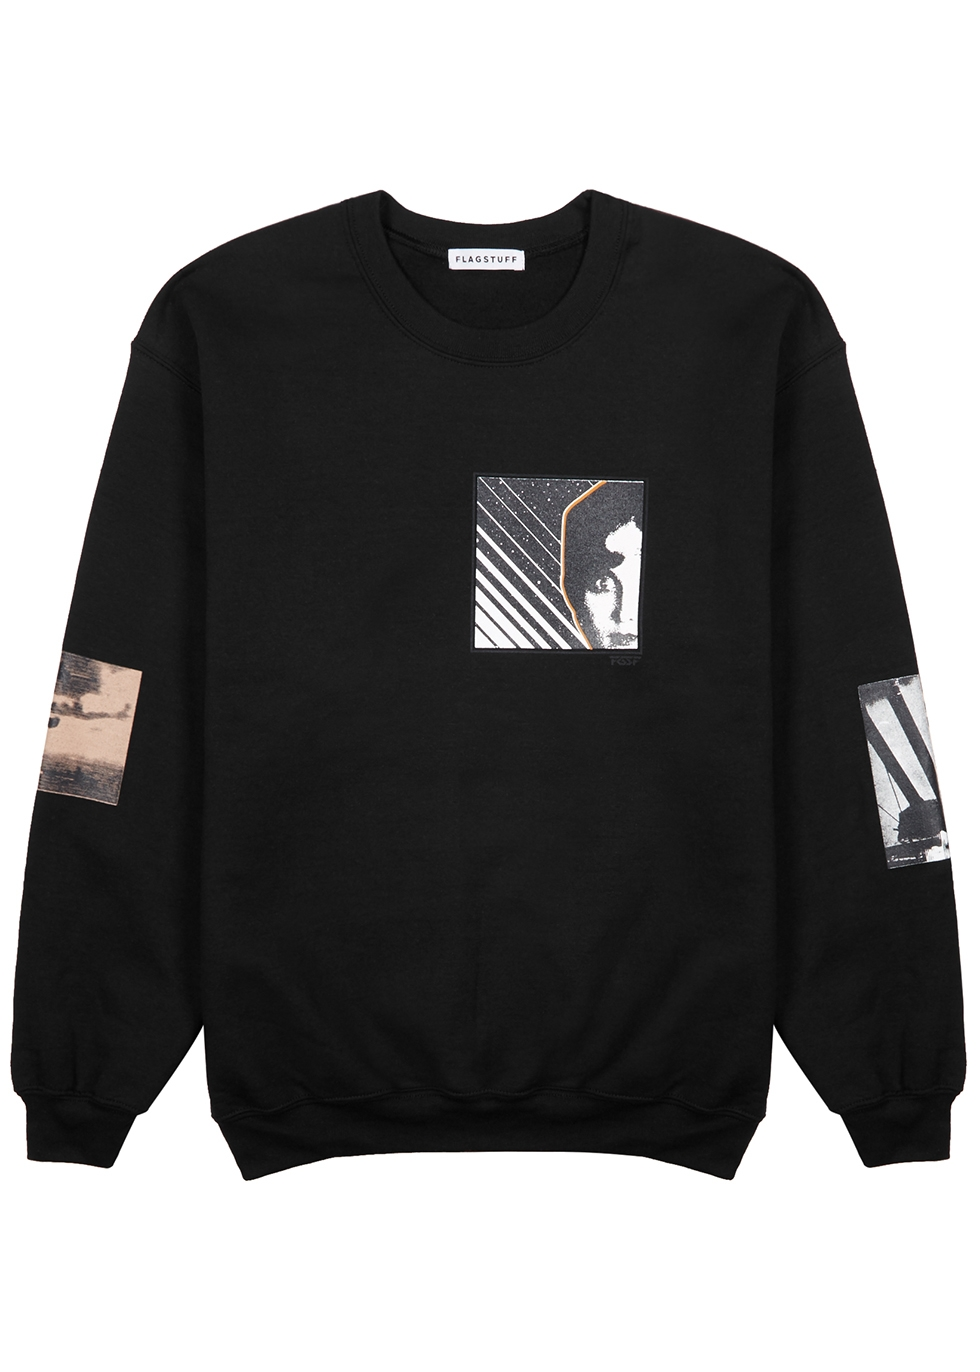 Black cotton/blend sweatshirt - Flagstuff